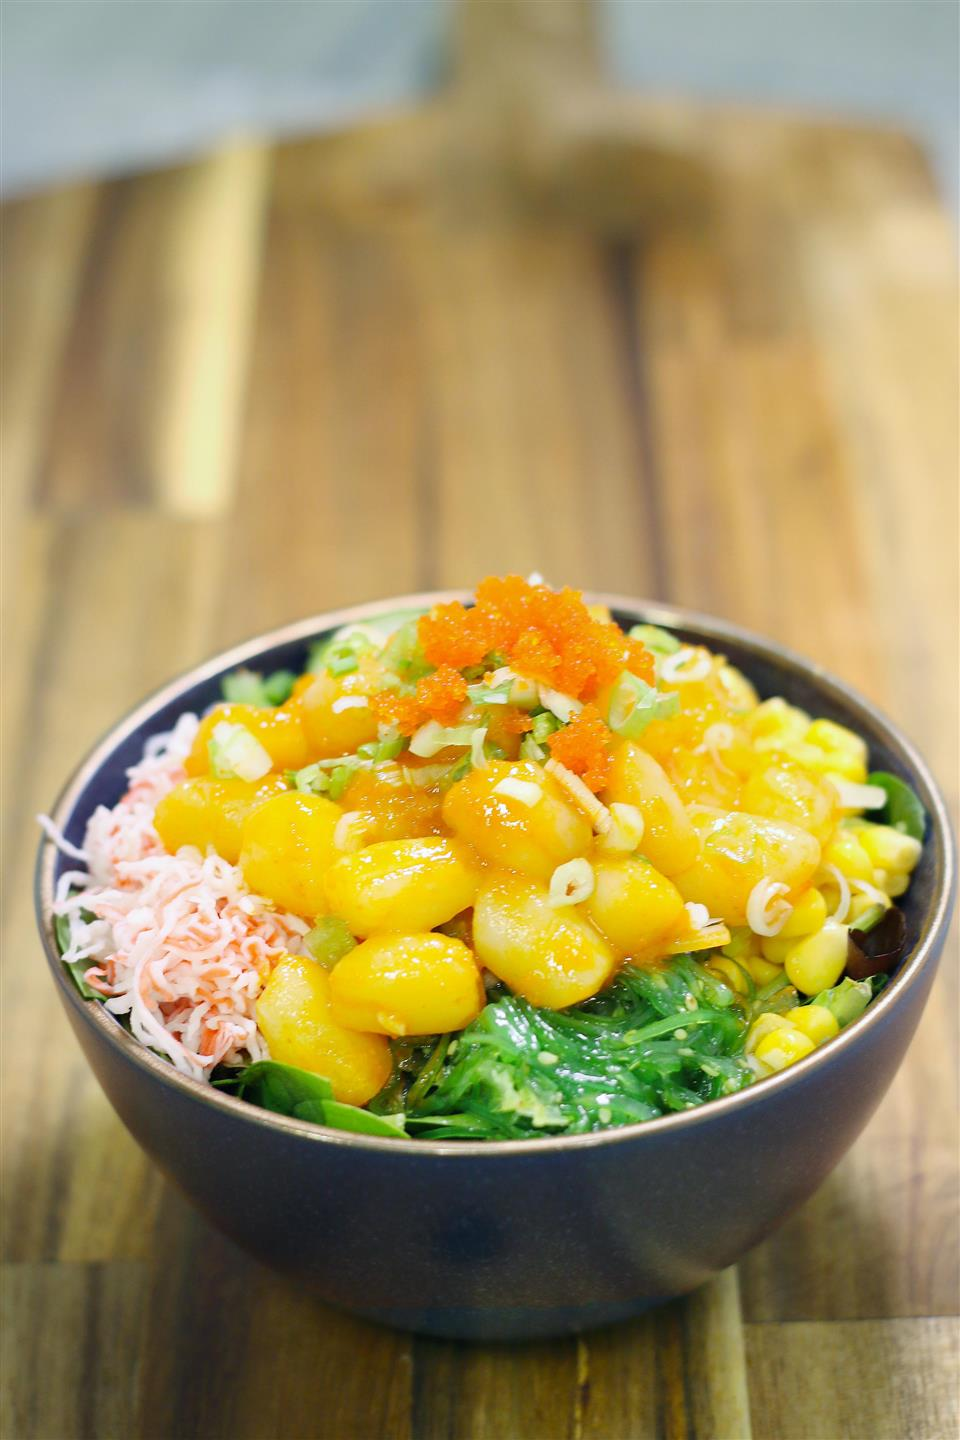 poke bowl with crab meat, carrots, seaweed and mango